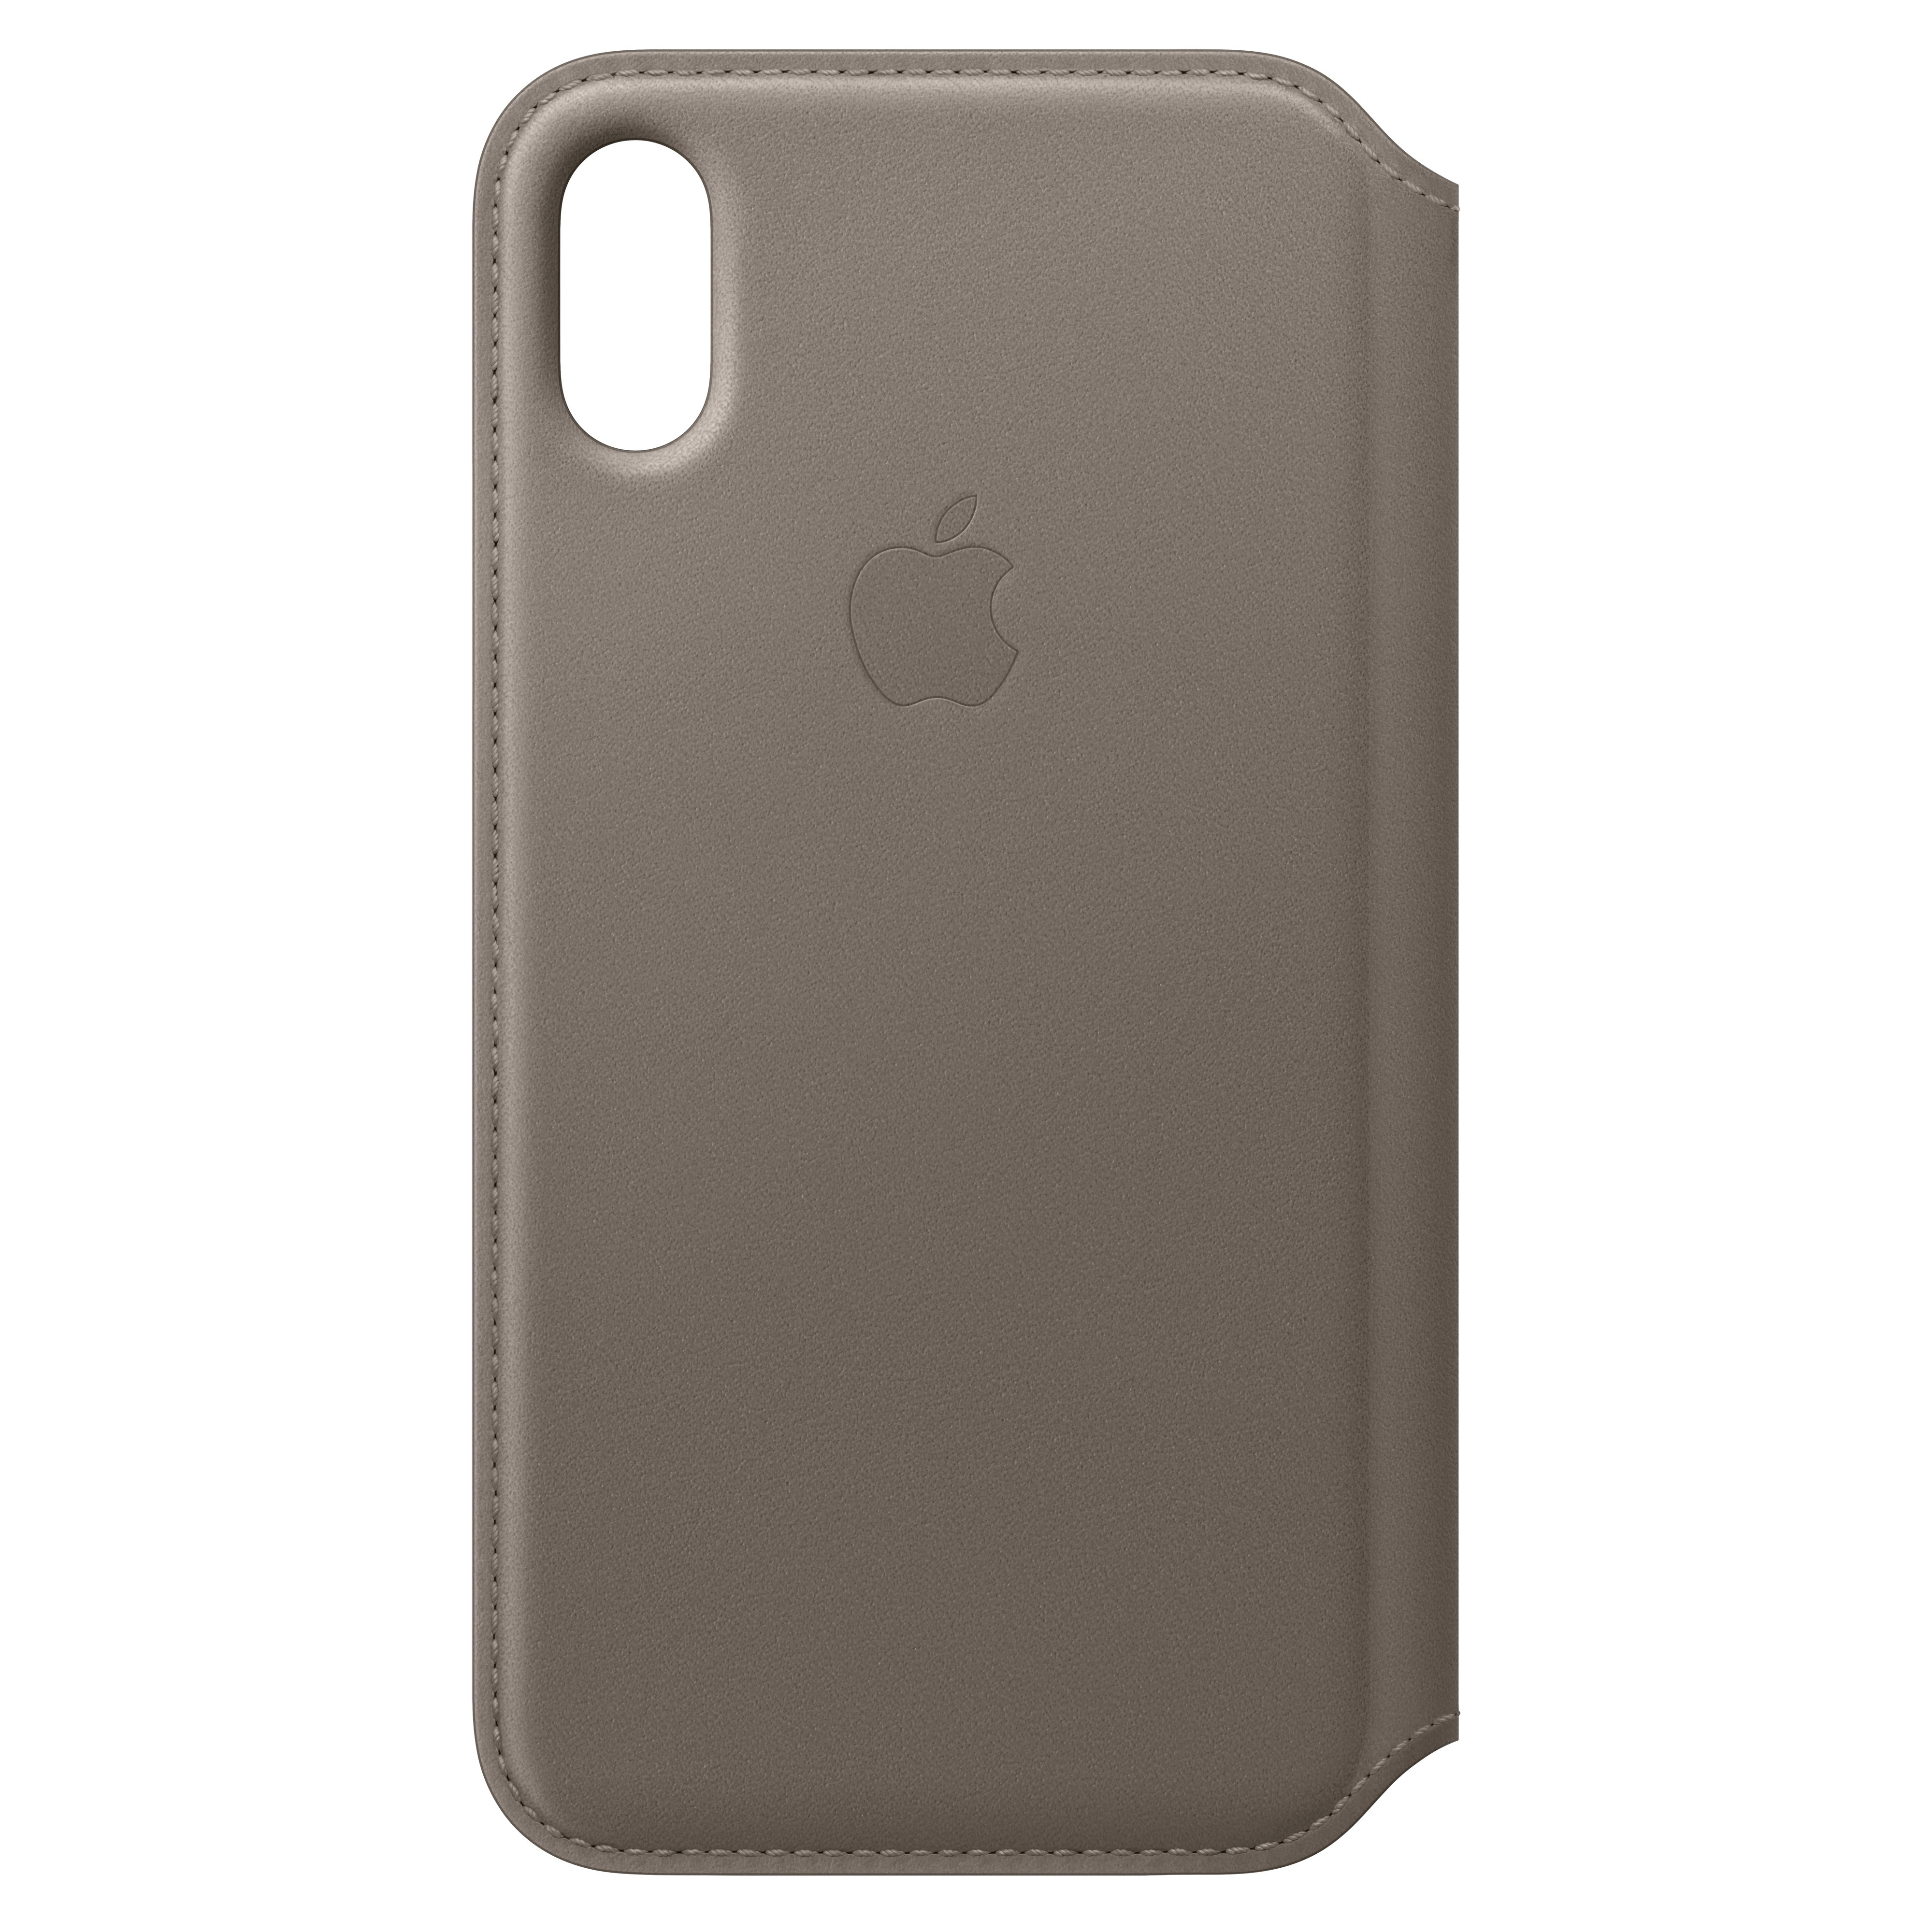 MQRY2ZM/A : iPhone X Folio skinndeksel (taupe)